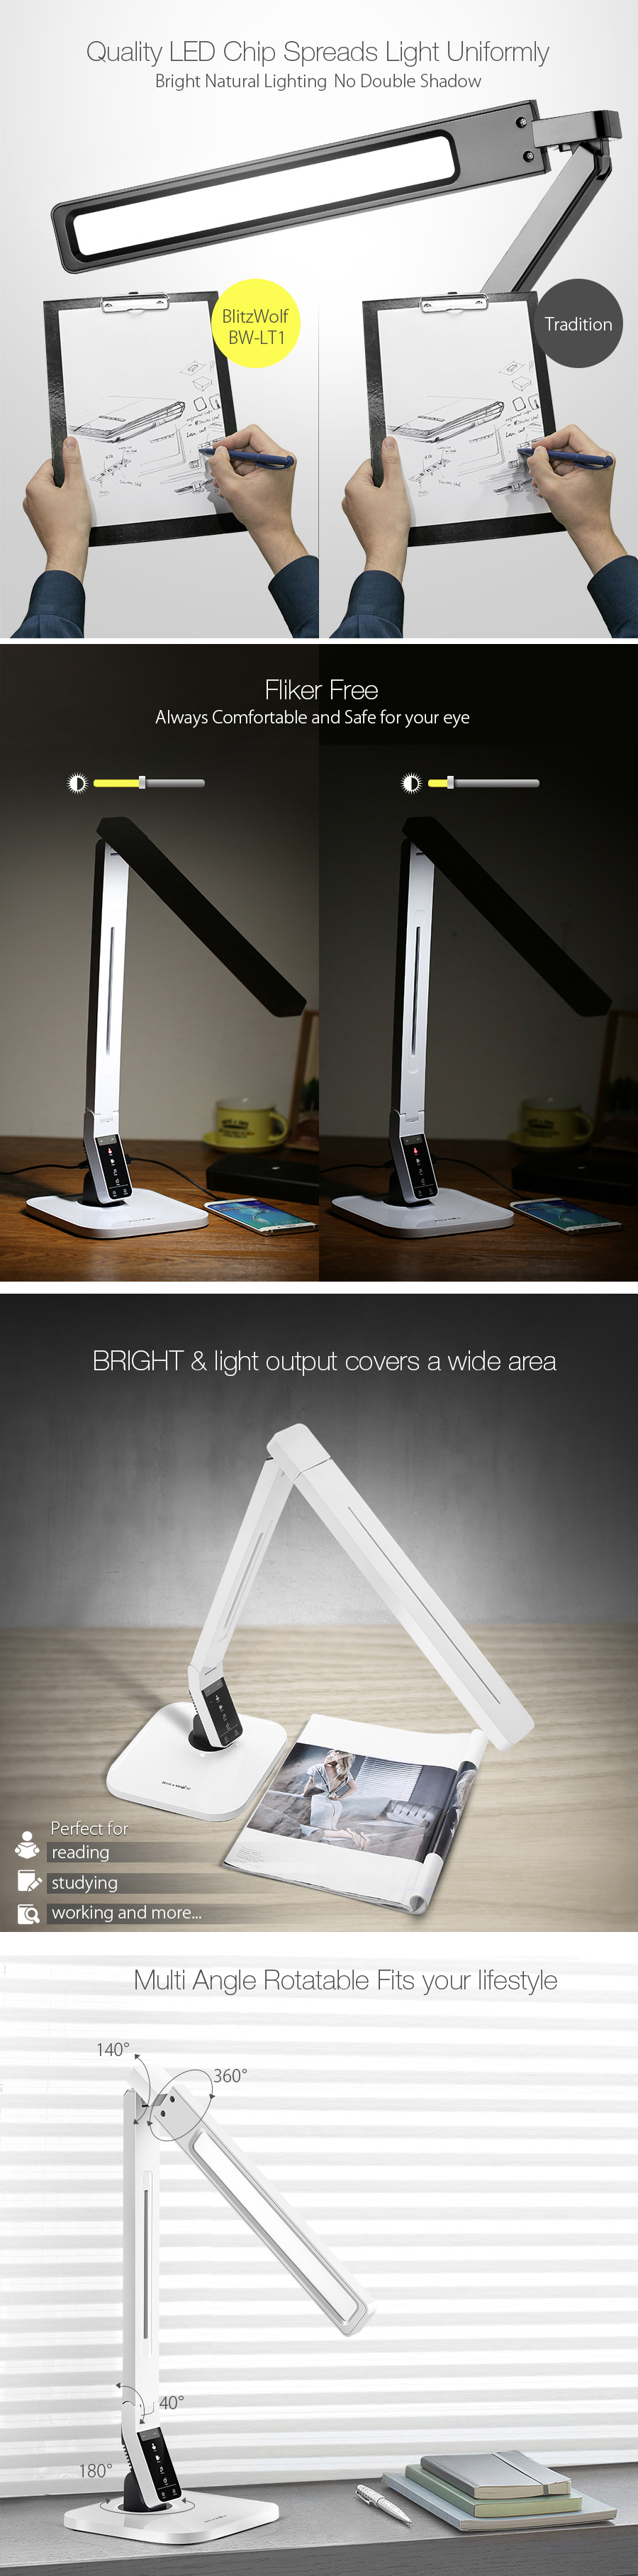 BlitzWolf® BW-LT1 Eye Protection Smart LED Desk Lamp Table Lamp Light Rotatable Dimmable 2.1A USB Charging